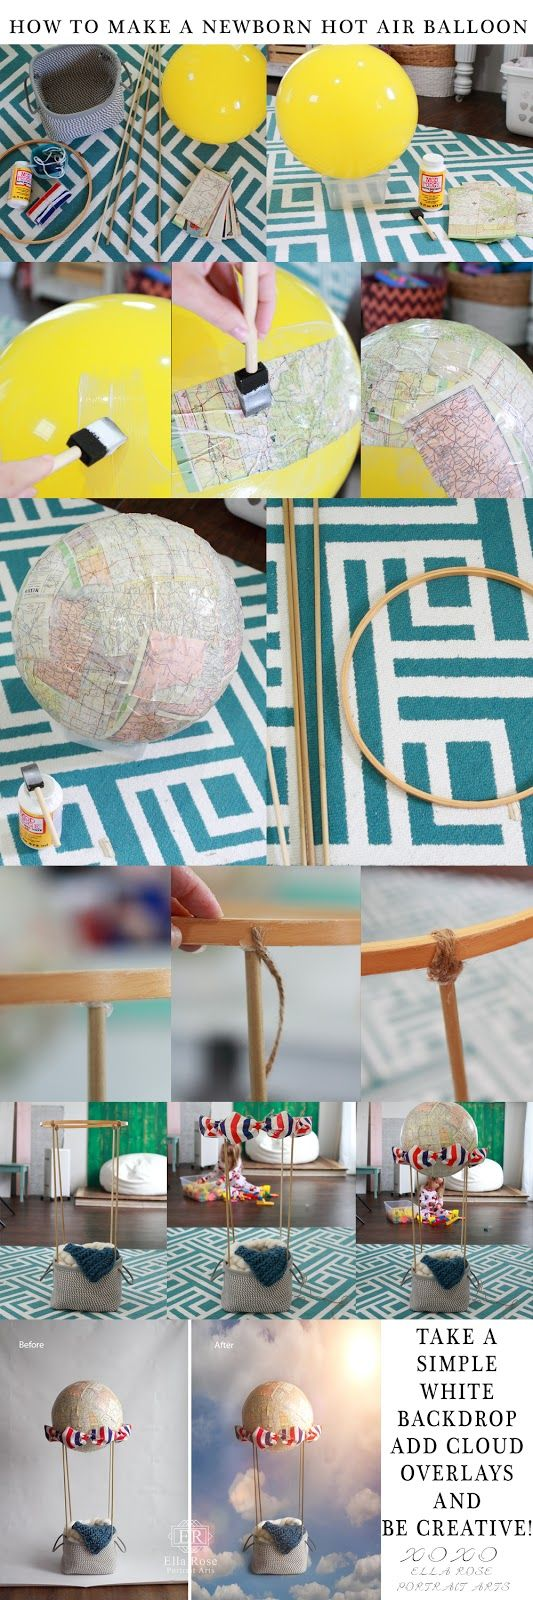 Crafting & Coffee Makes this Momma Happy: How To Make a Newborn Hot Air Balloon Photography ...